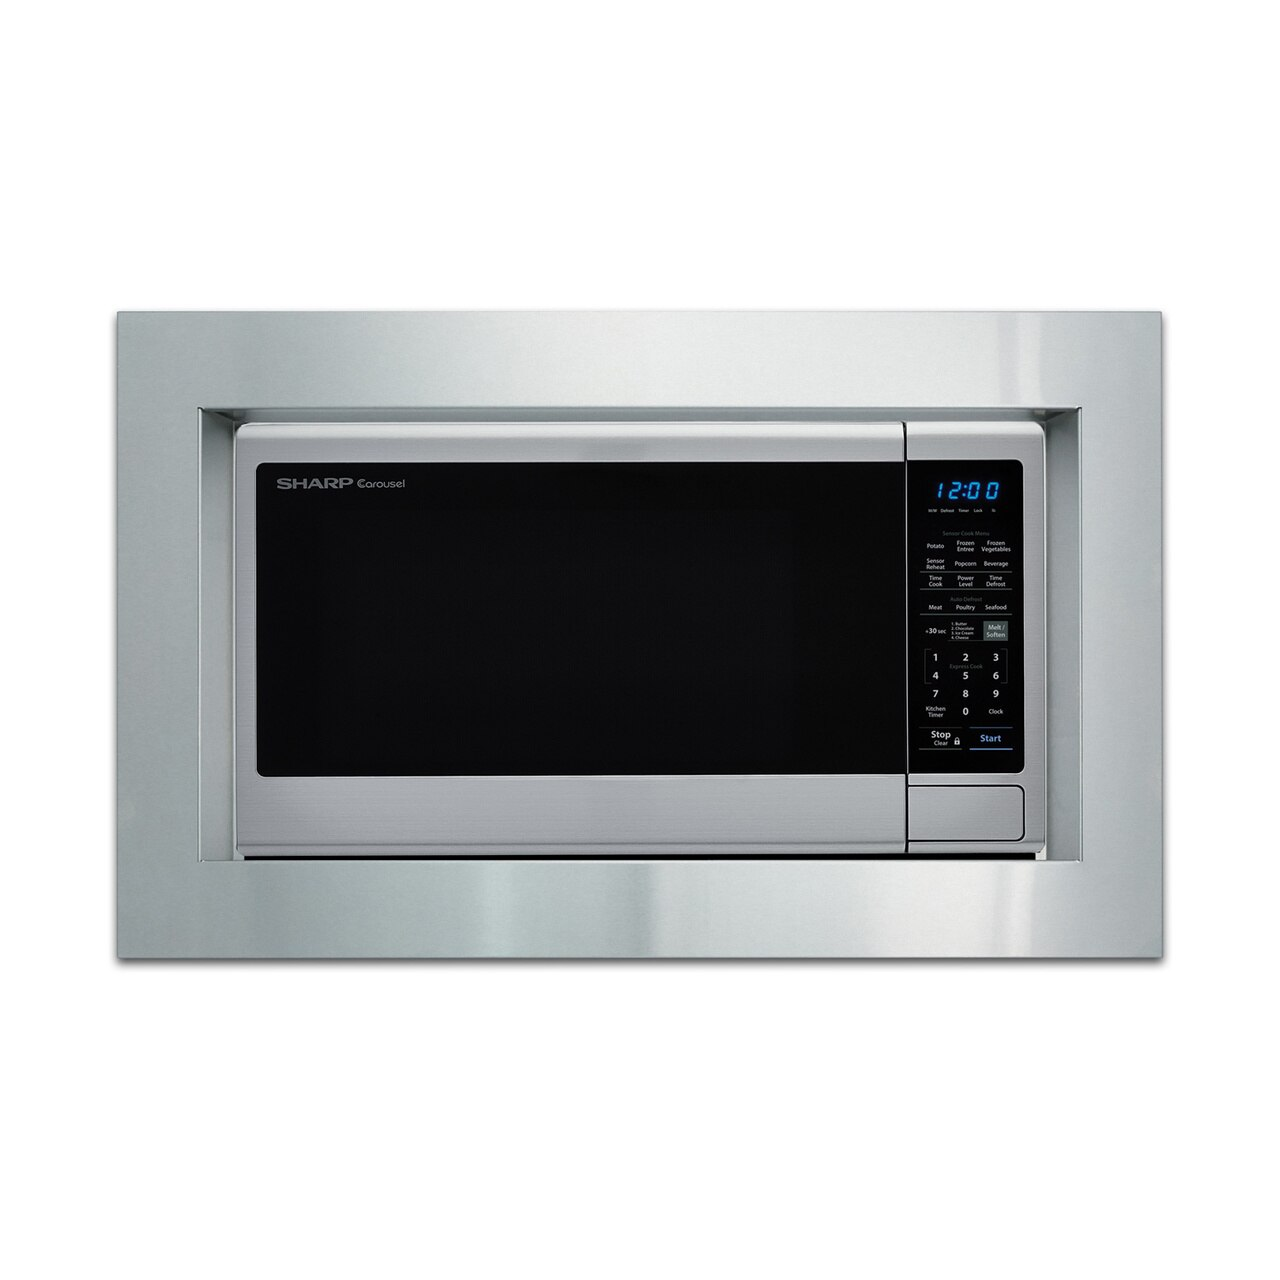 1.8 cu. ft. Sharp Stainless Steel Microwave with Black Mirror Door (SMC1843CM) – with trim kit